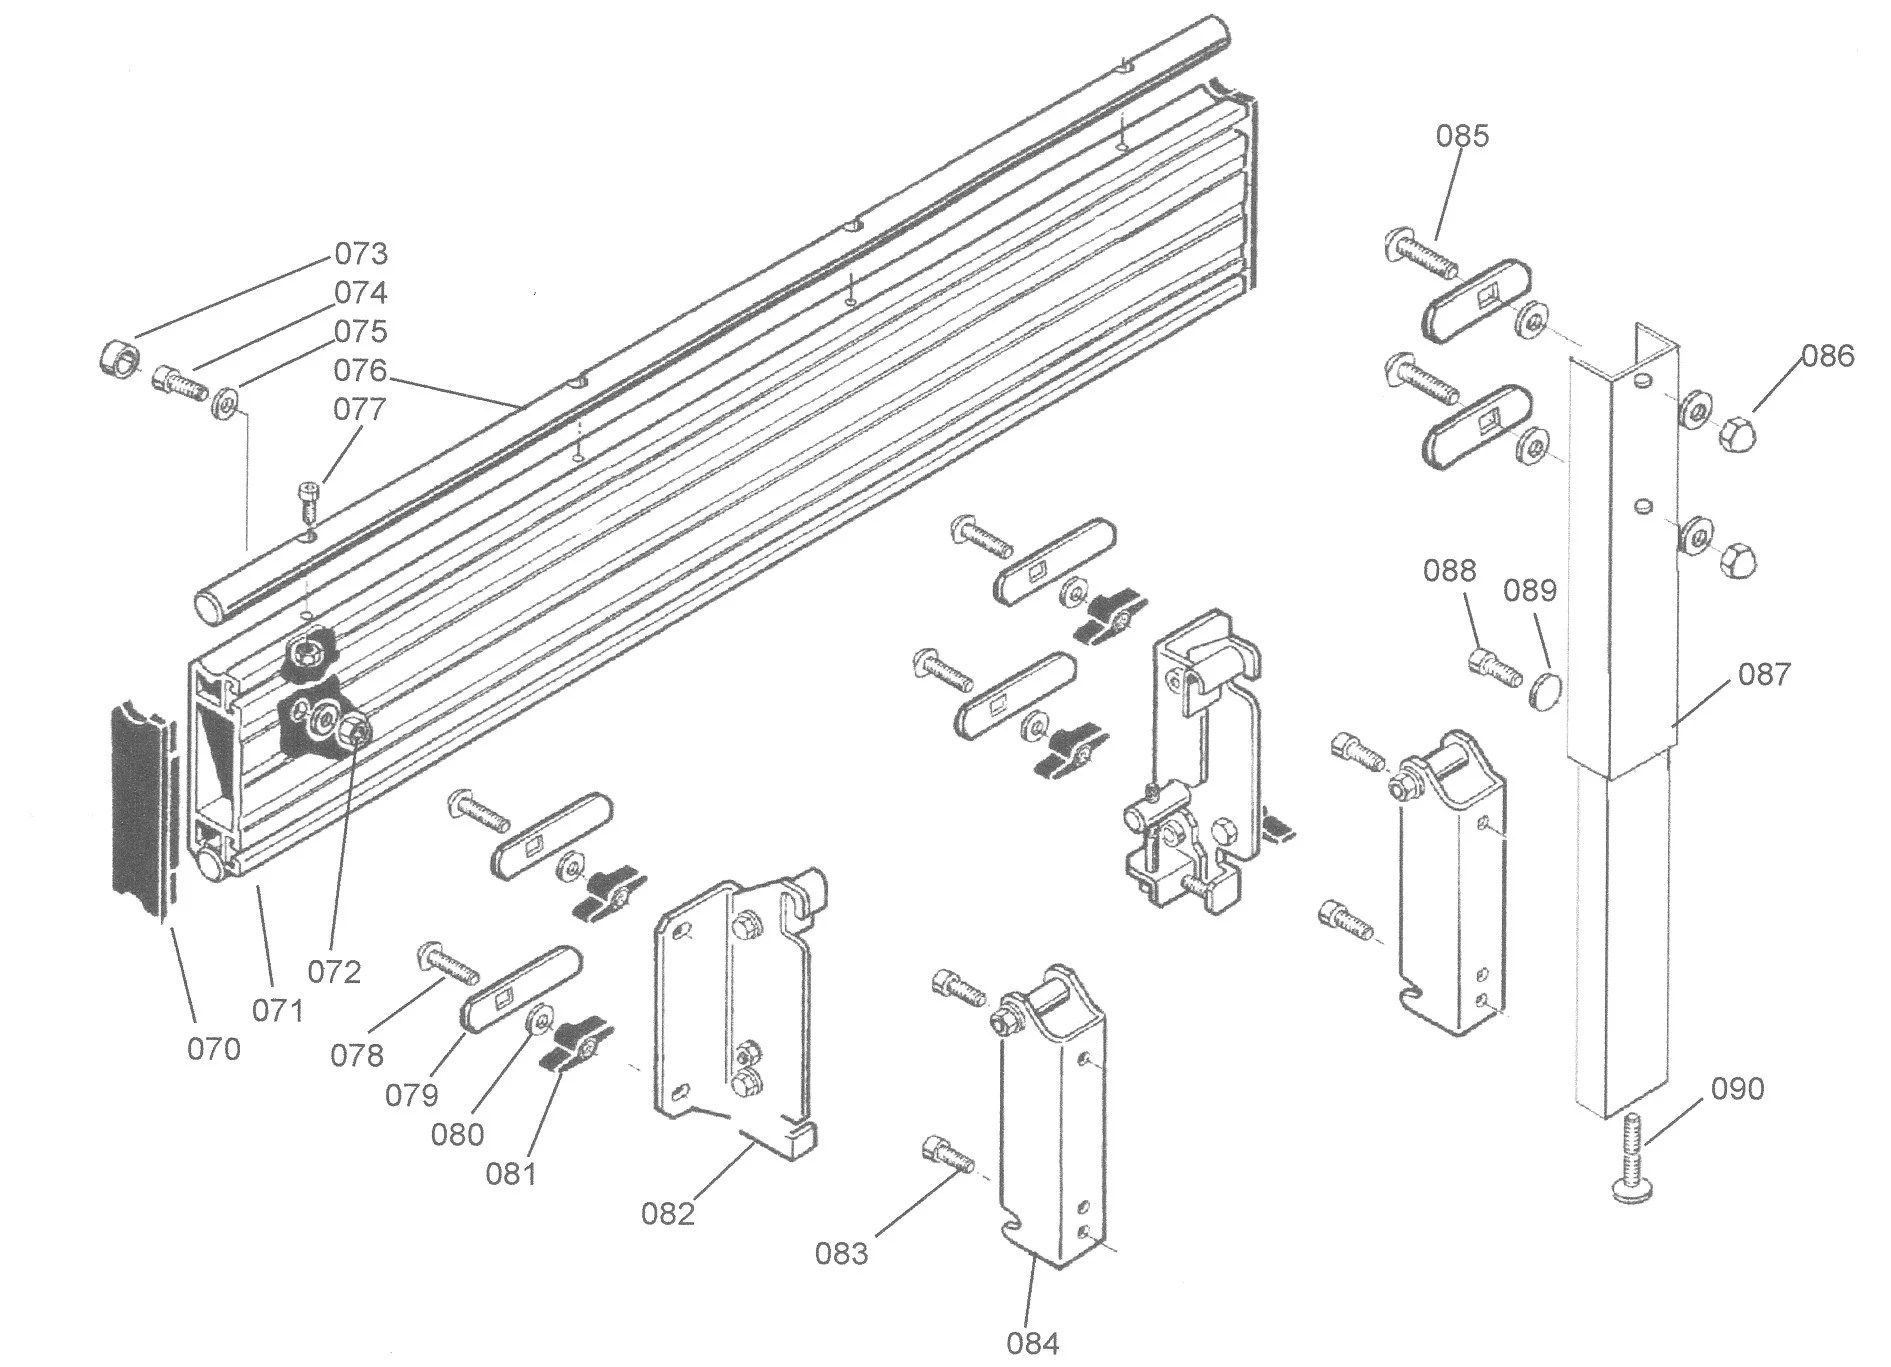 Sip Sliding Carriage For Table Saw Diagram B